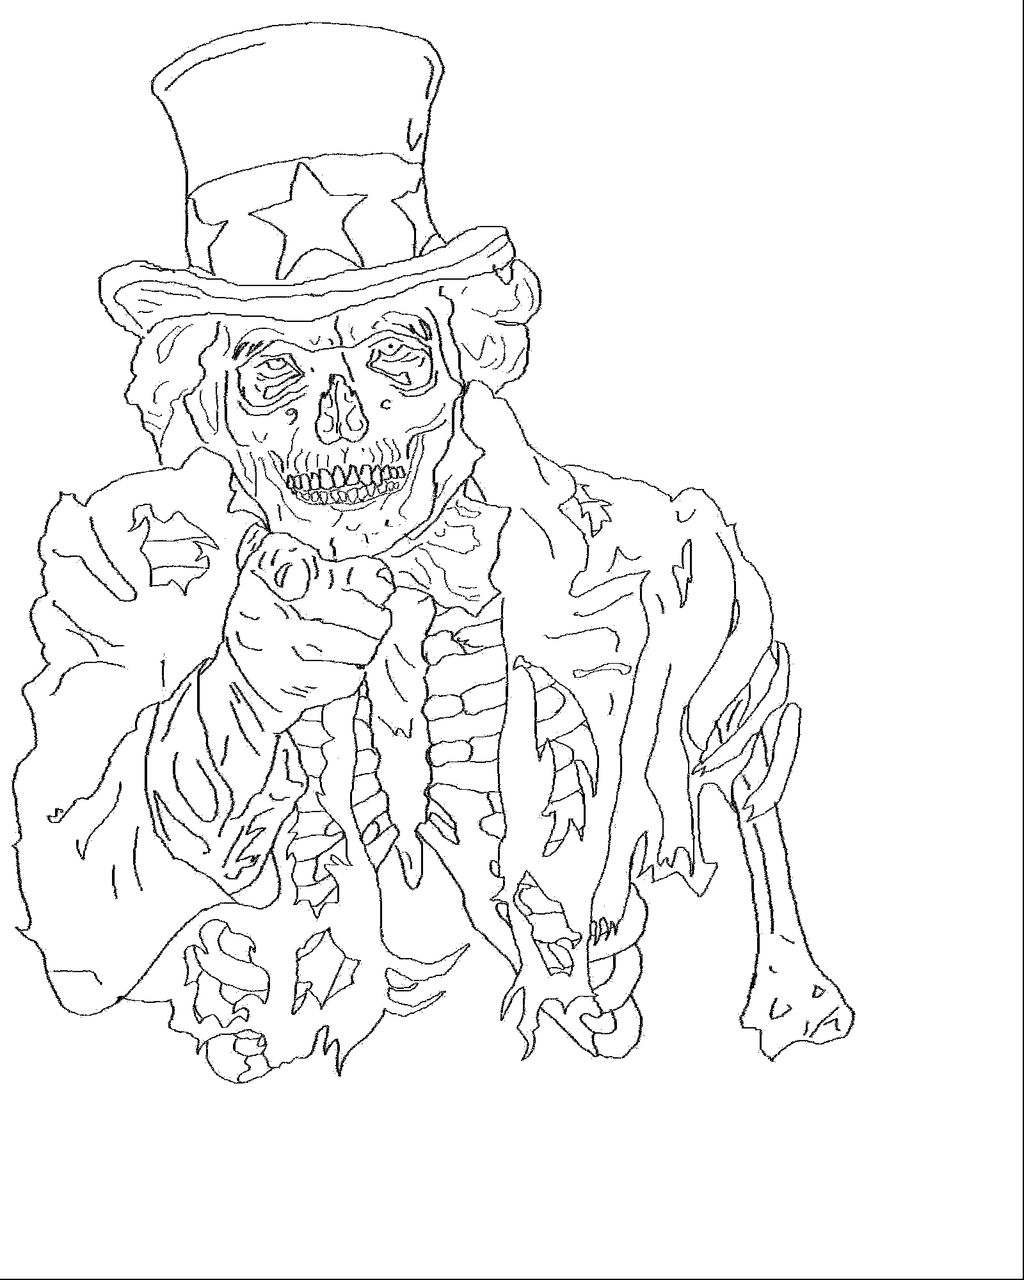 Sketchesofsam Sssh Critical Role Is: Zombie Uncle Sam Sketch By ColdGlasses On DeviantArt